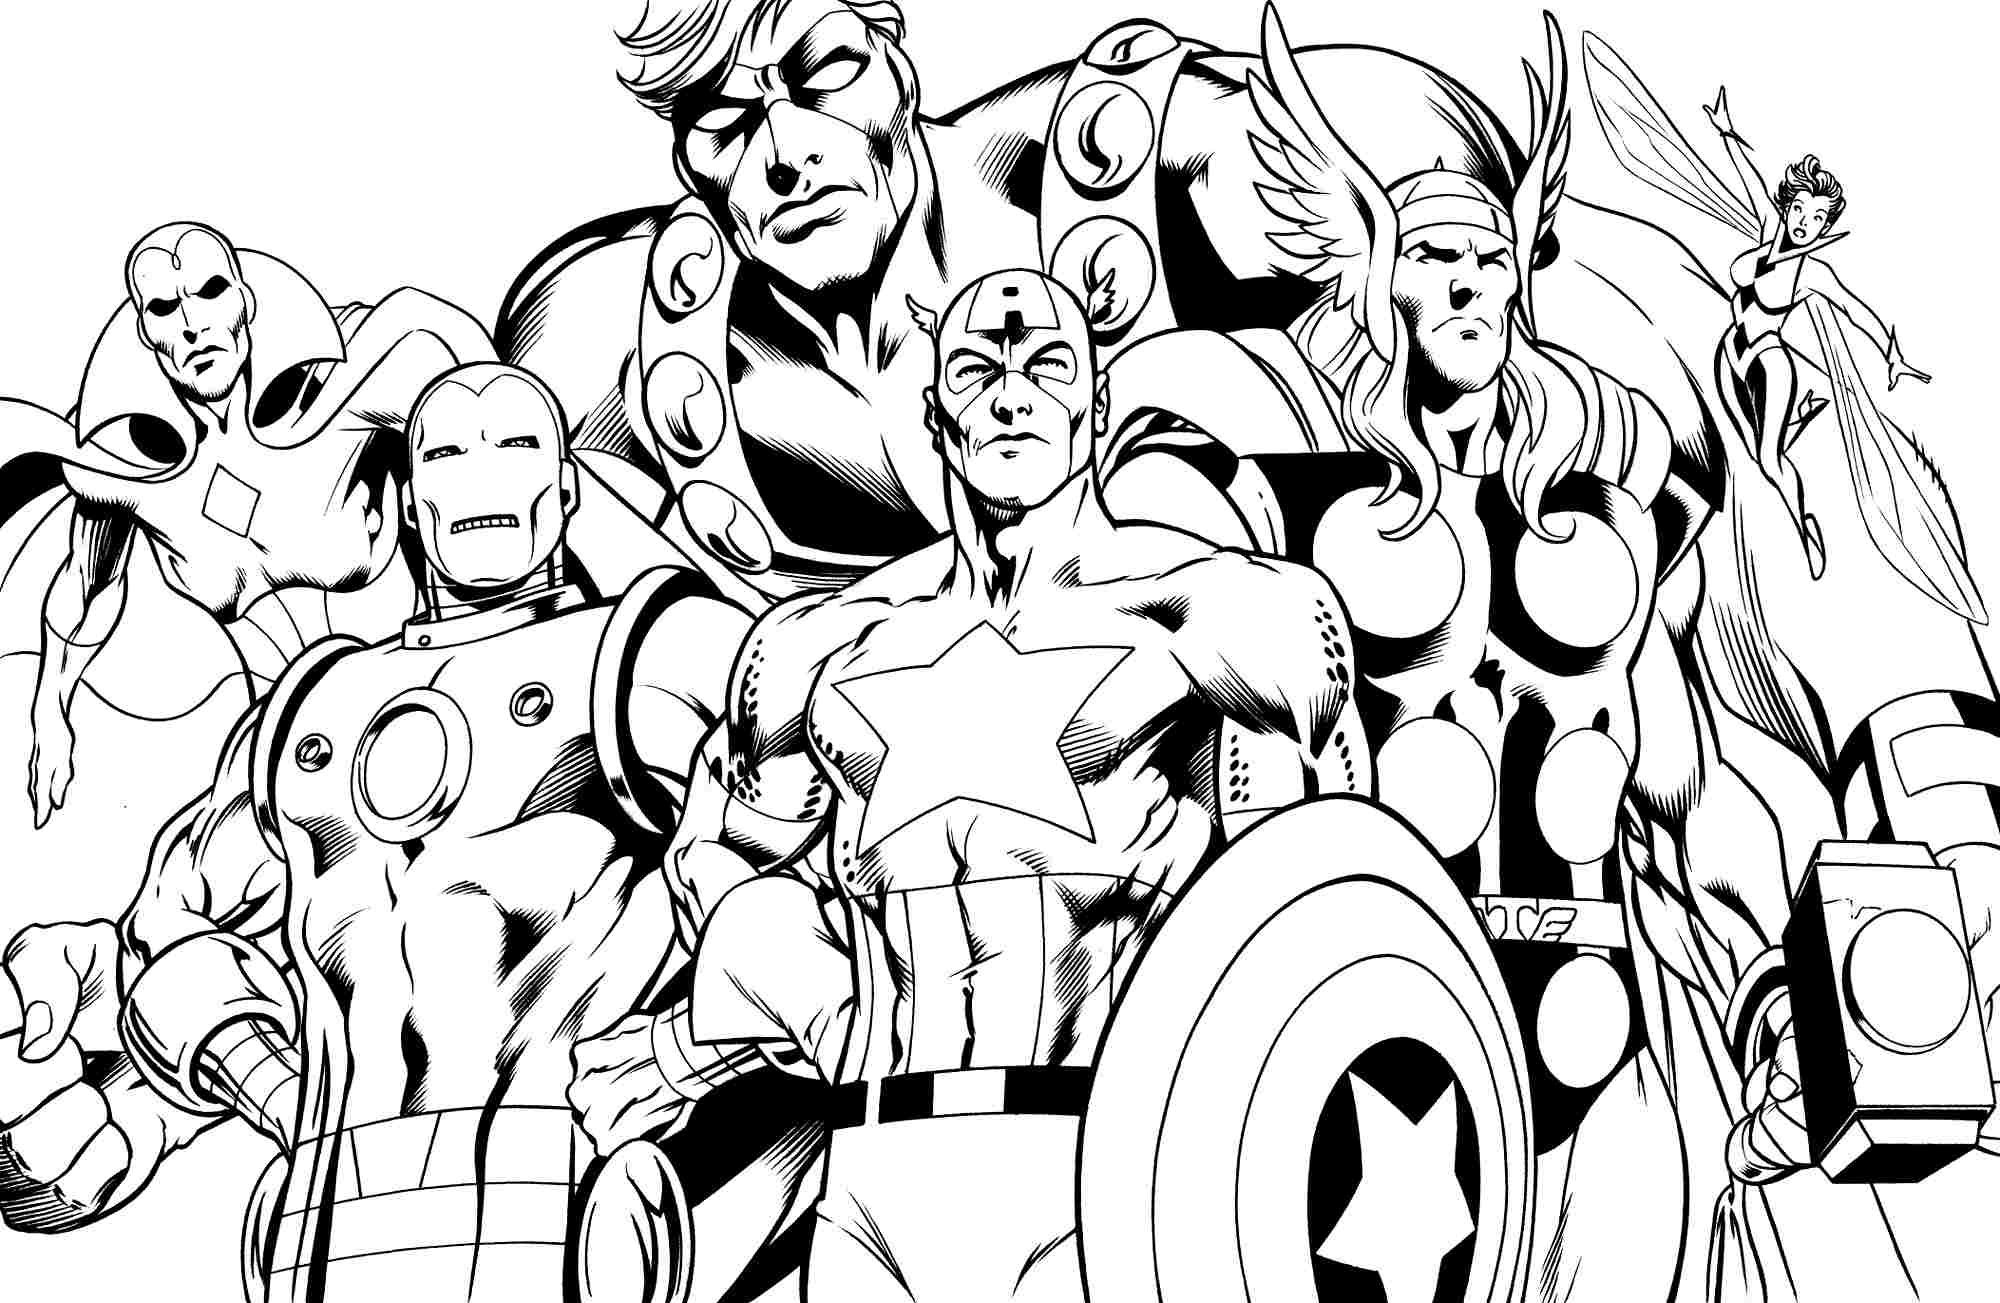 coloring pages superhero superhero coloring pages to download and print for free superhero pages coloring